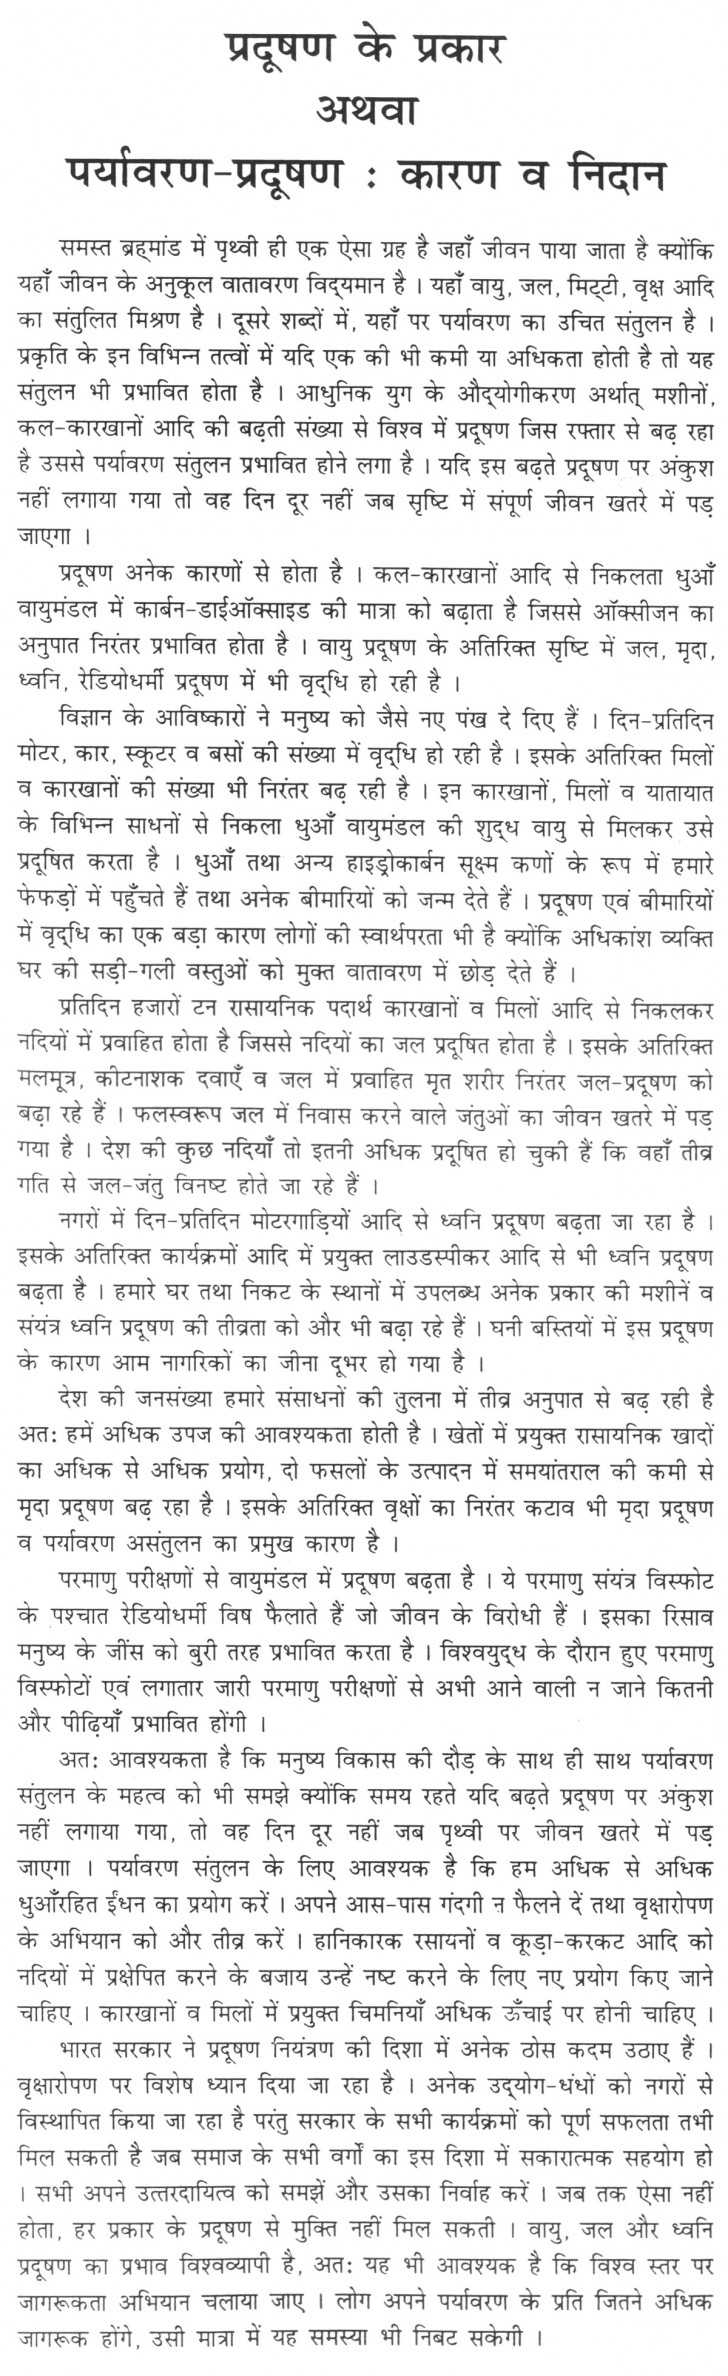 014 Good Habits Essay In Hindi Exceptional Healthy Eating Reading Is A Habit 728